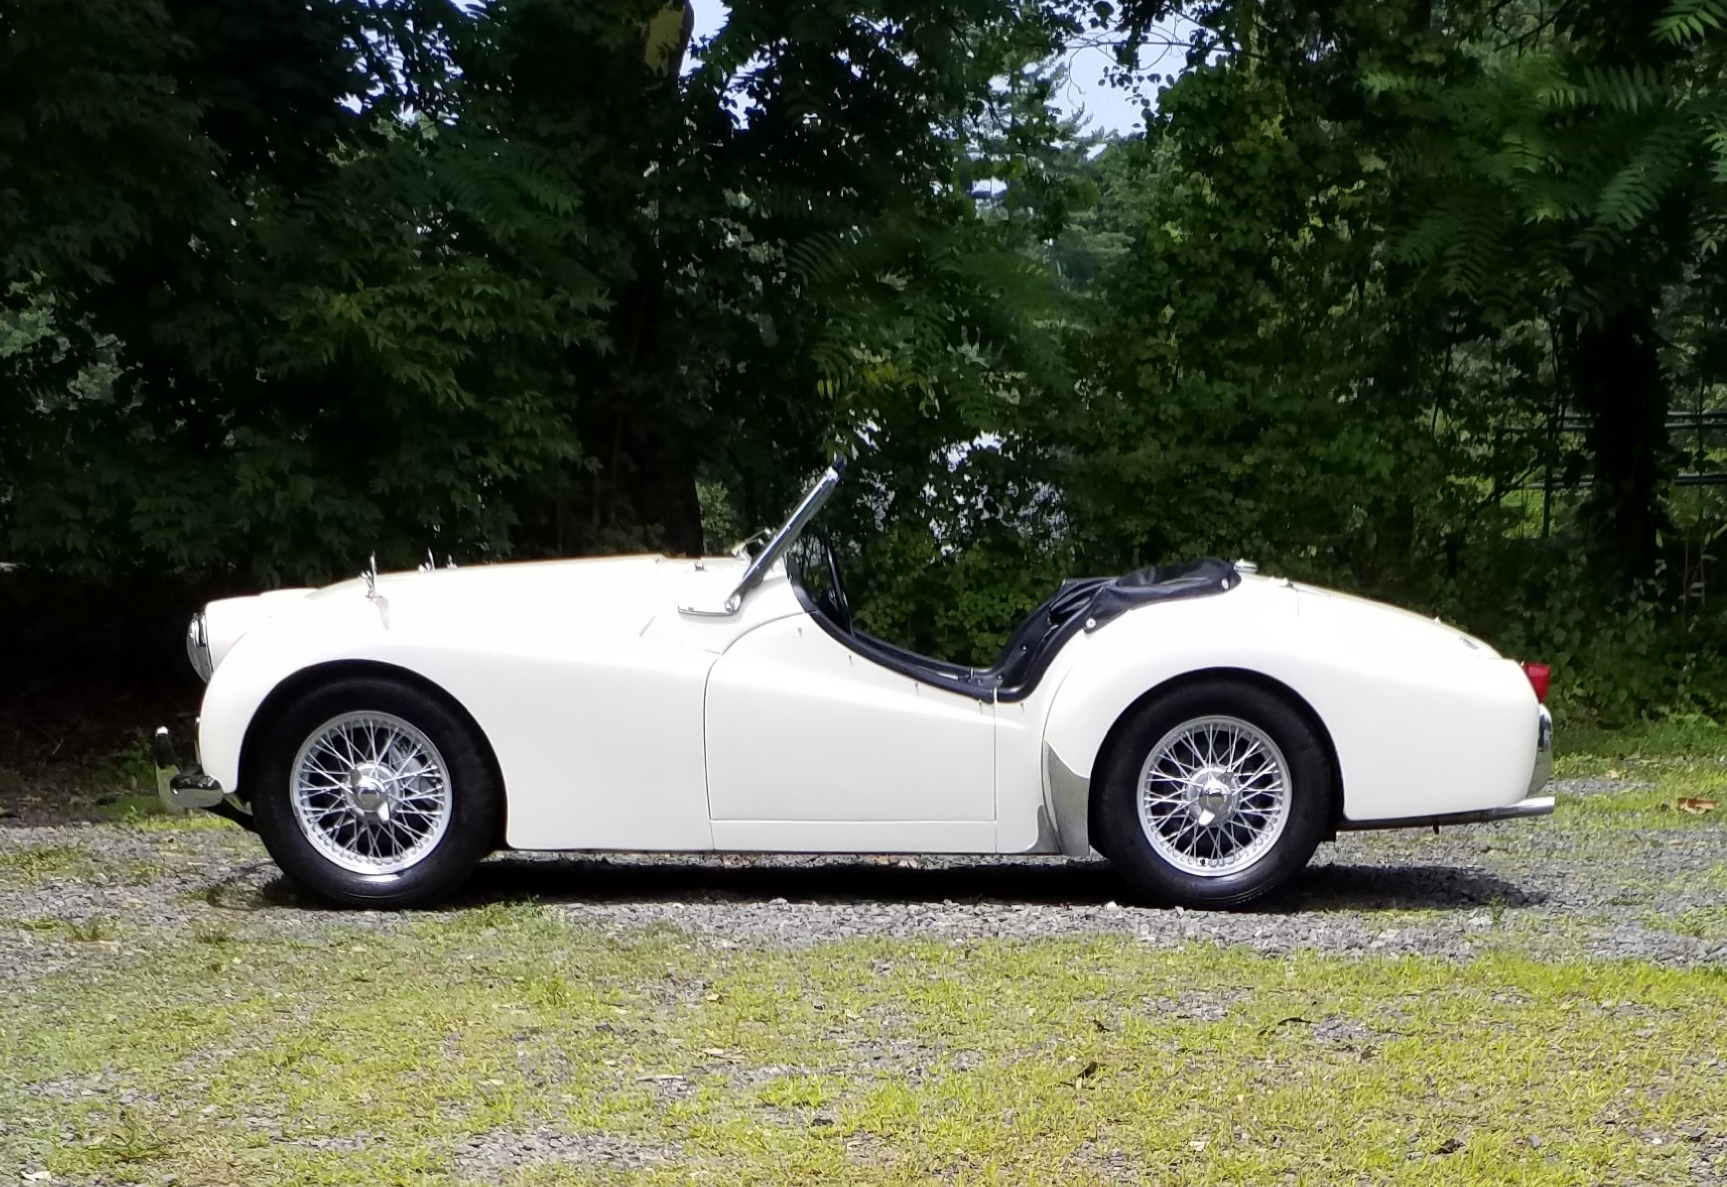 Used-1957-Triumph-TR-3-Small-Mouth